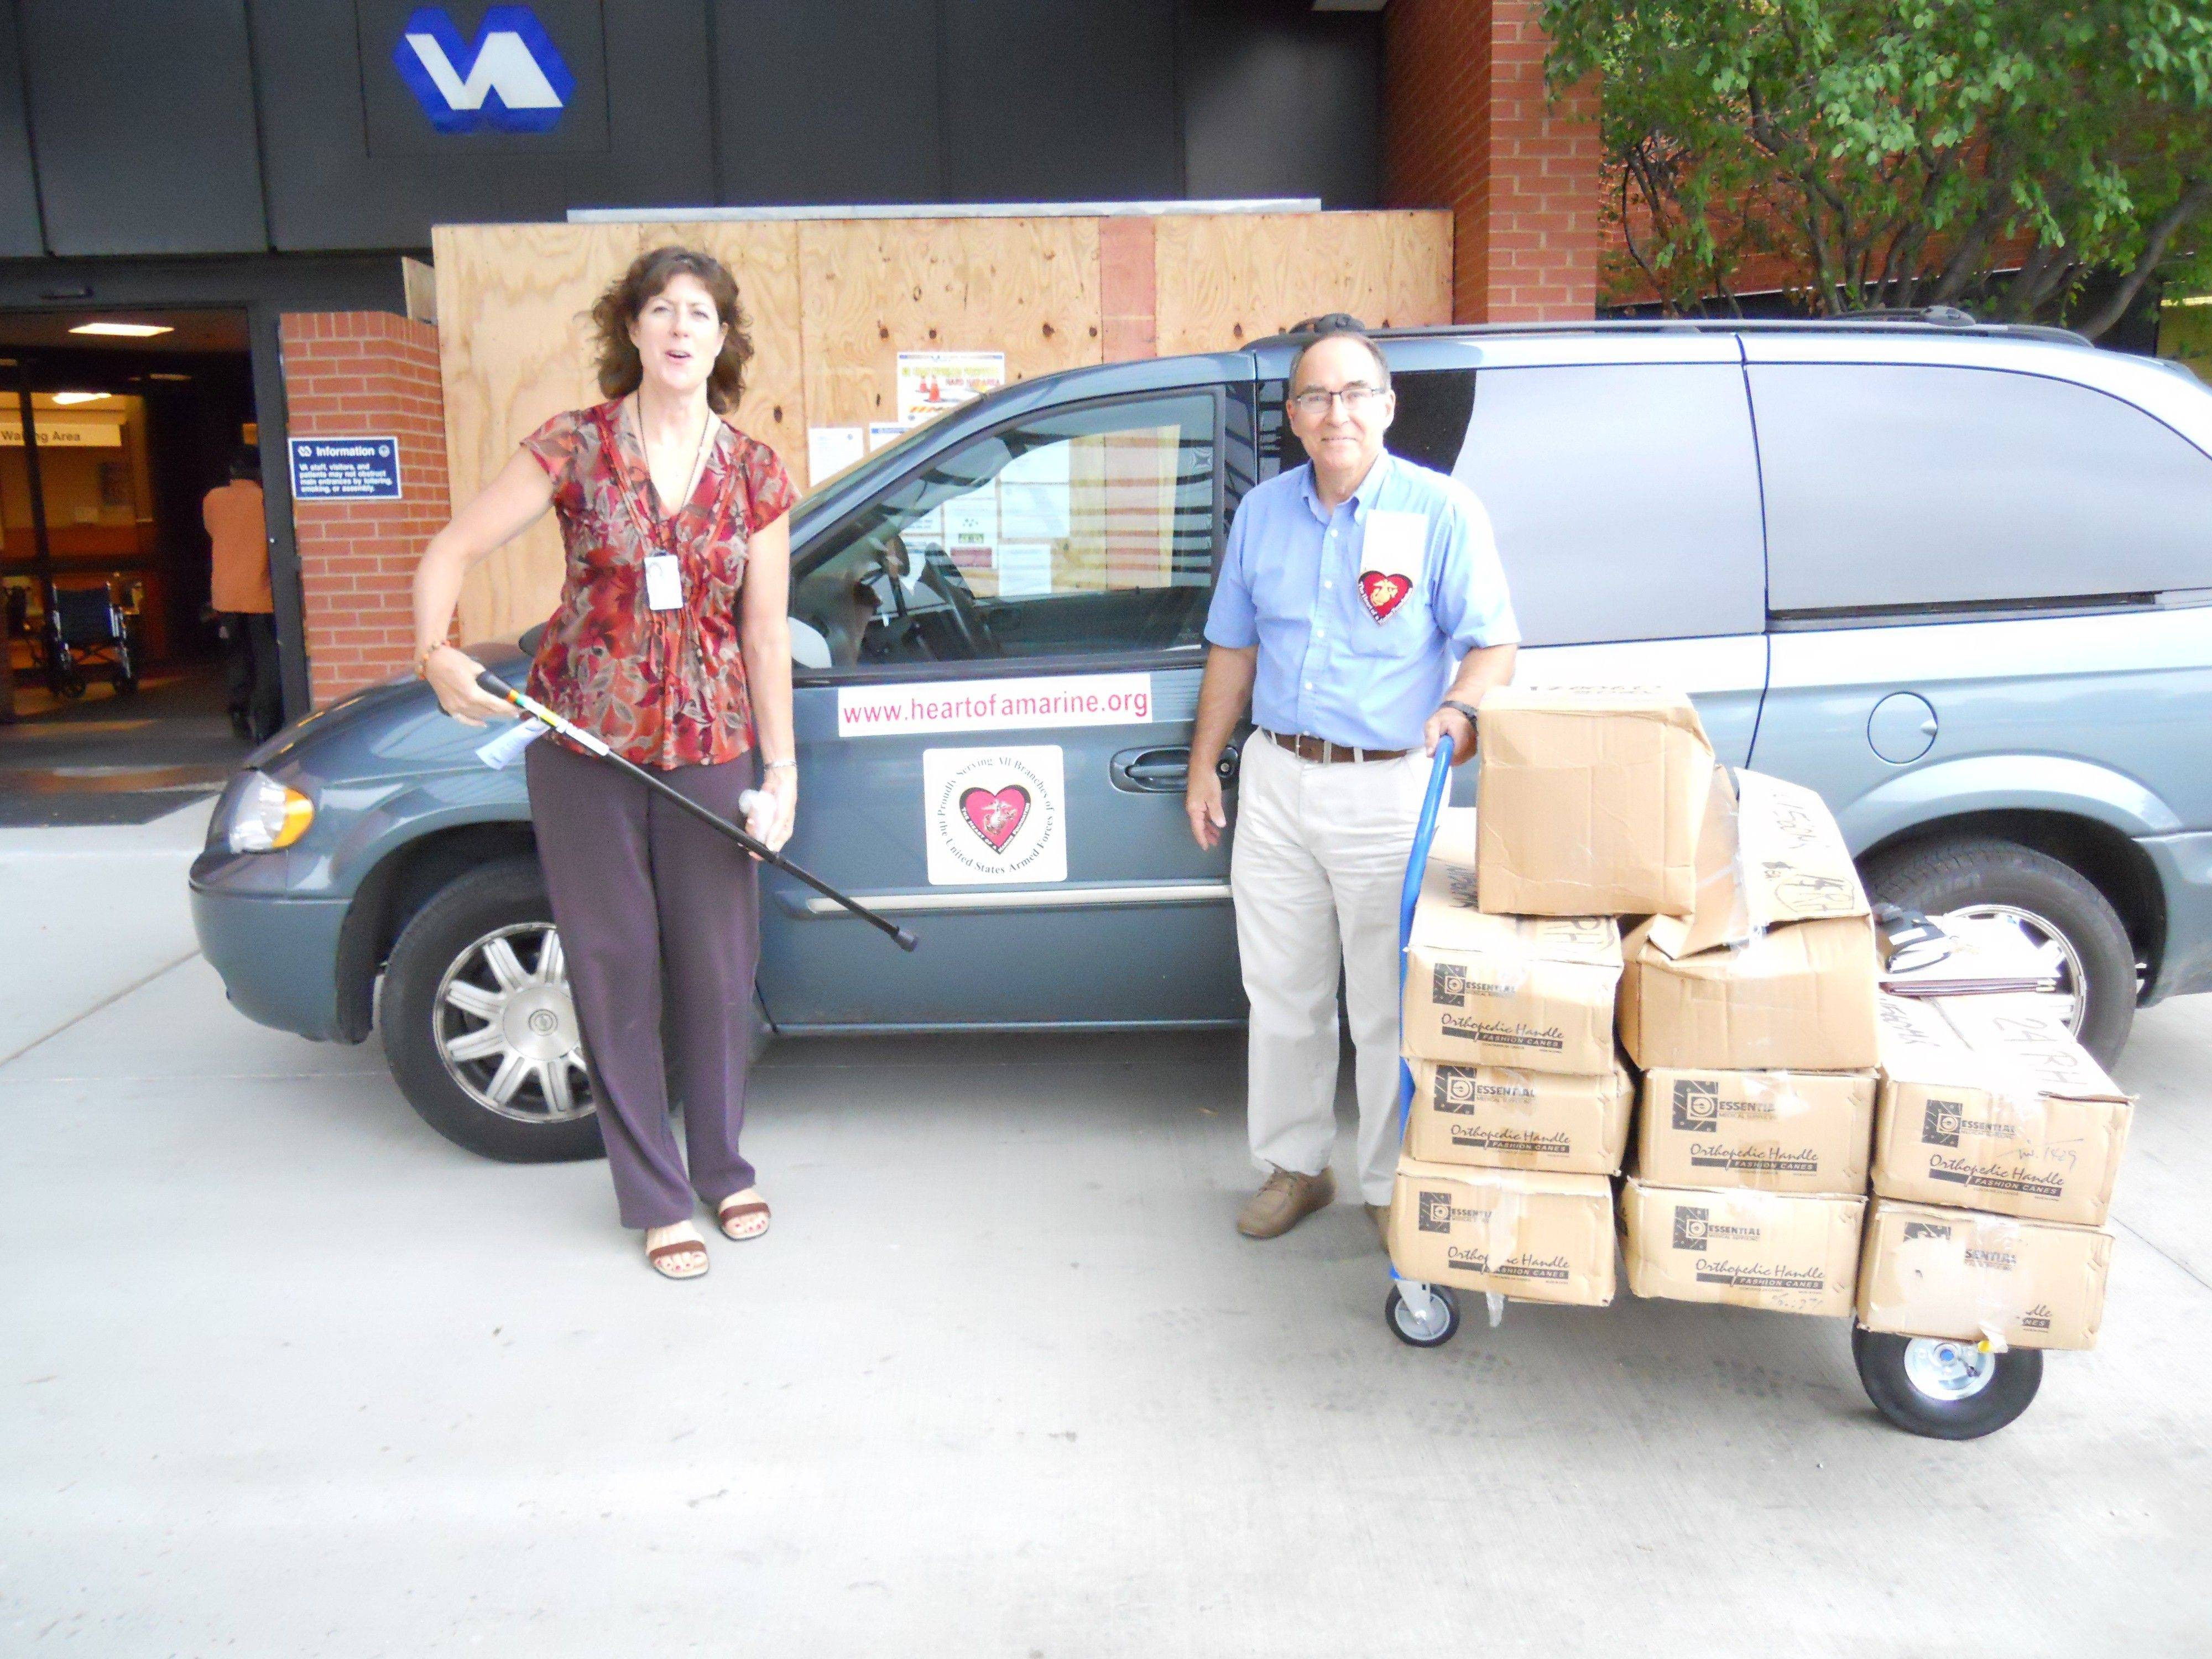 Roy Frank, co-founder of Heart Of A Marine Foundation, delivers canes to Annette Katamay at Edward Hines Jr. VA Hospital on Friday, Sept. 9.